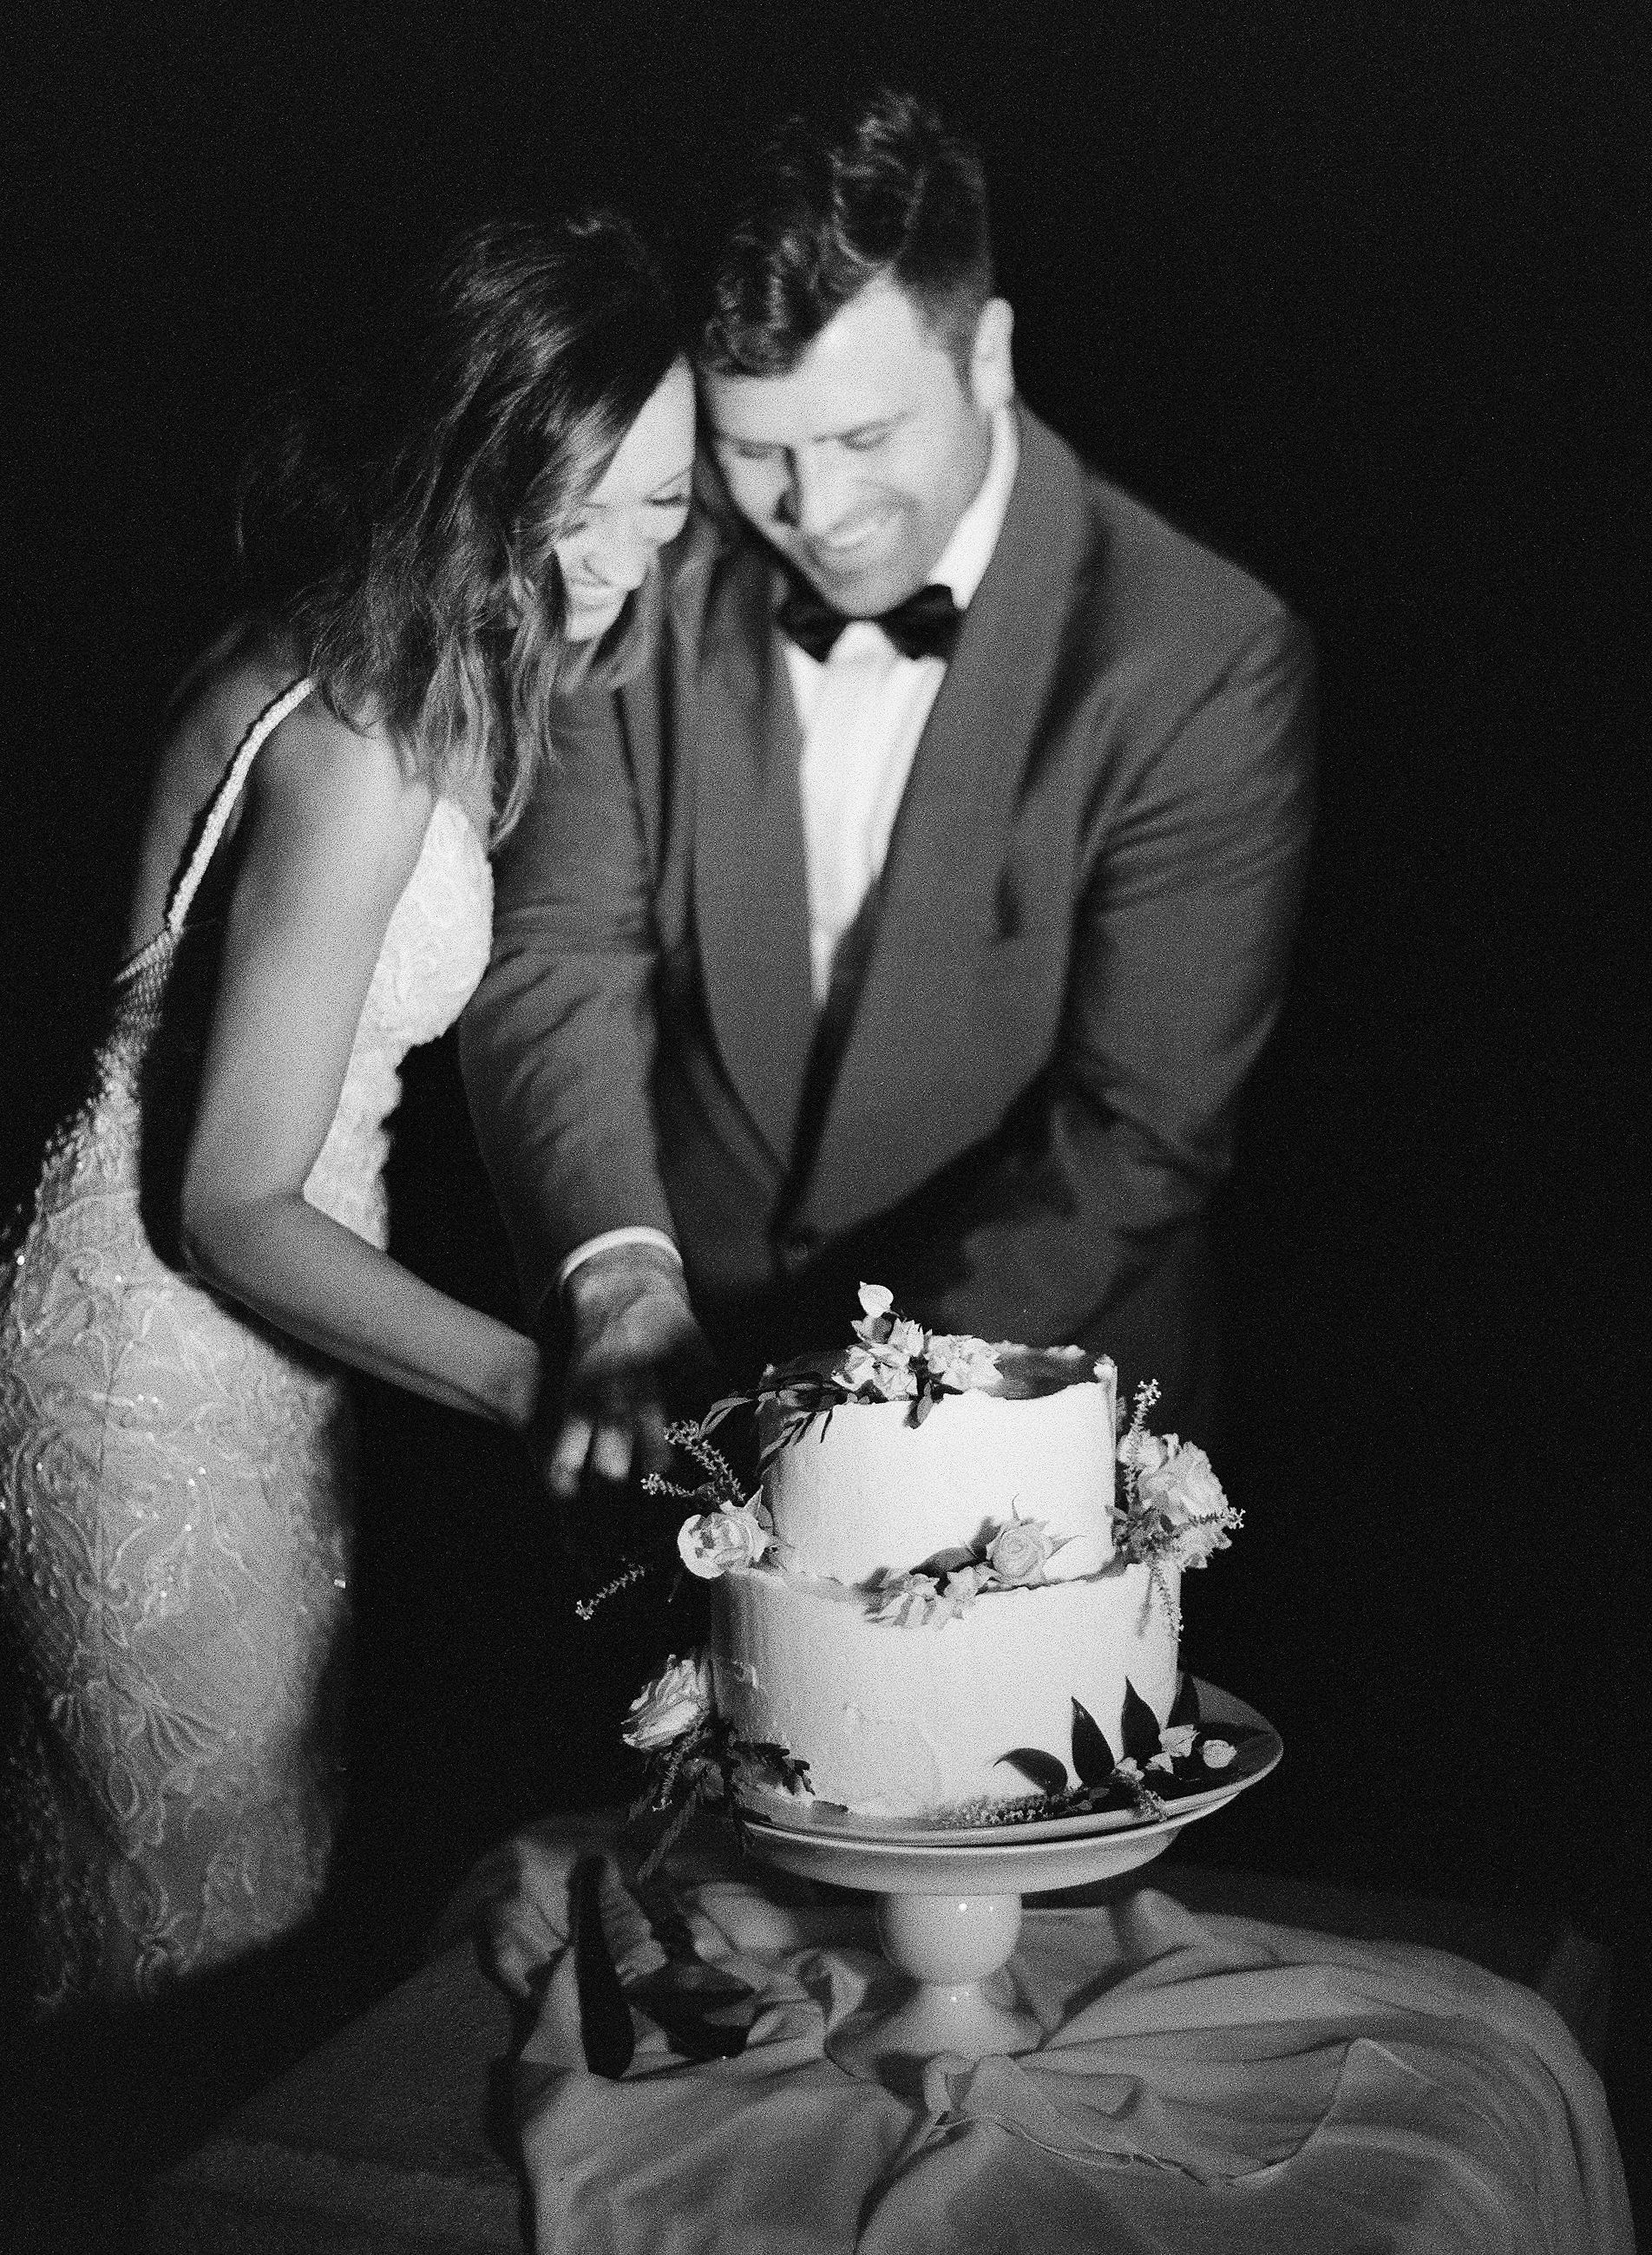 jessica ryan wedding bride and groom cutting cake